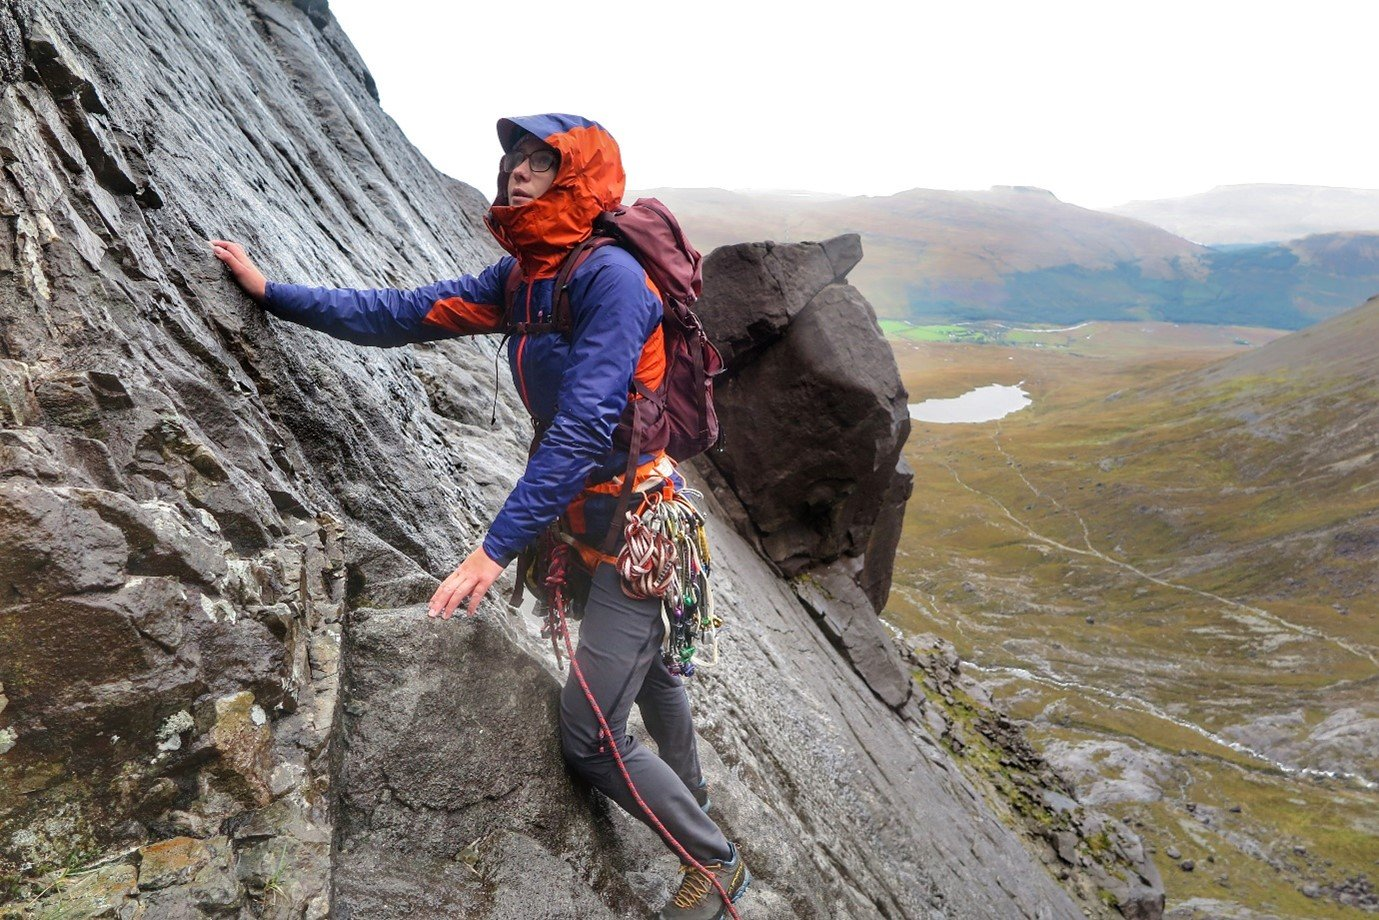 Anna stands on cliff in orange and purple Berghaus waterproofs